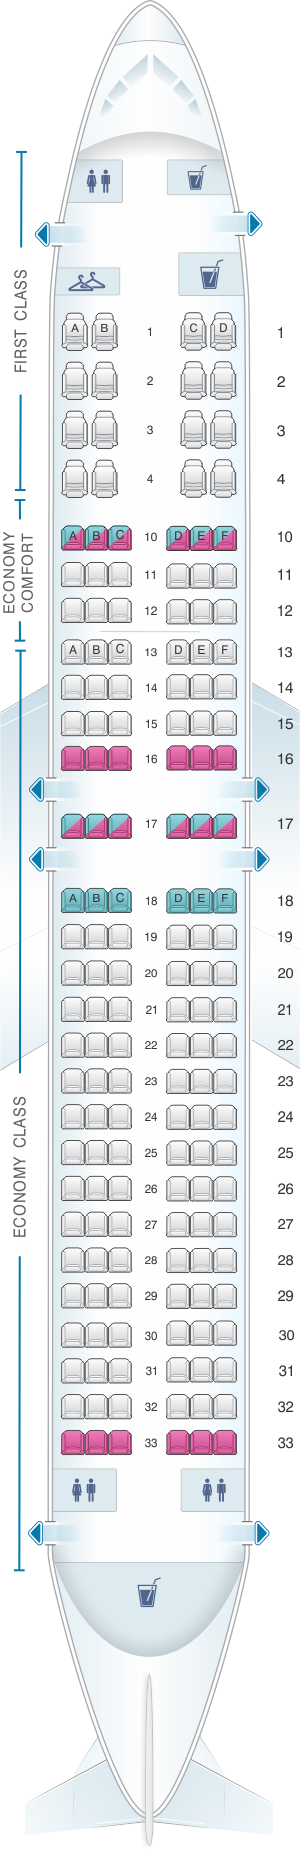 Seat map for Delta Airlines Boeing B737 800 (738)